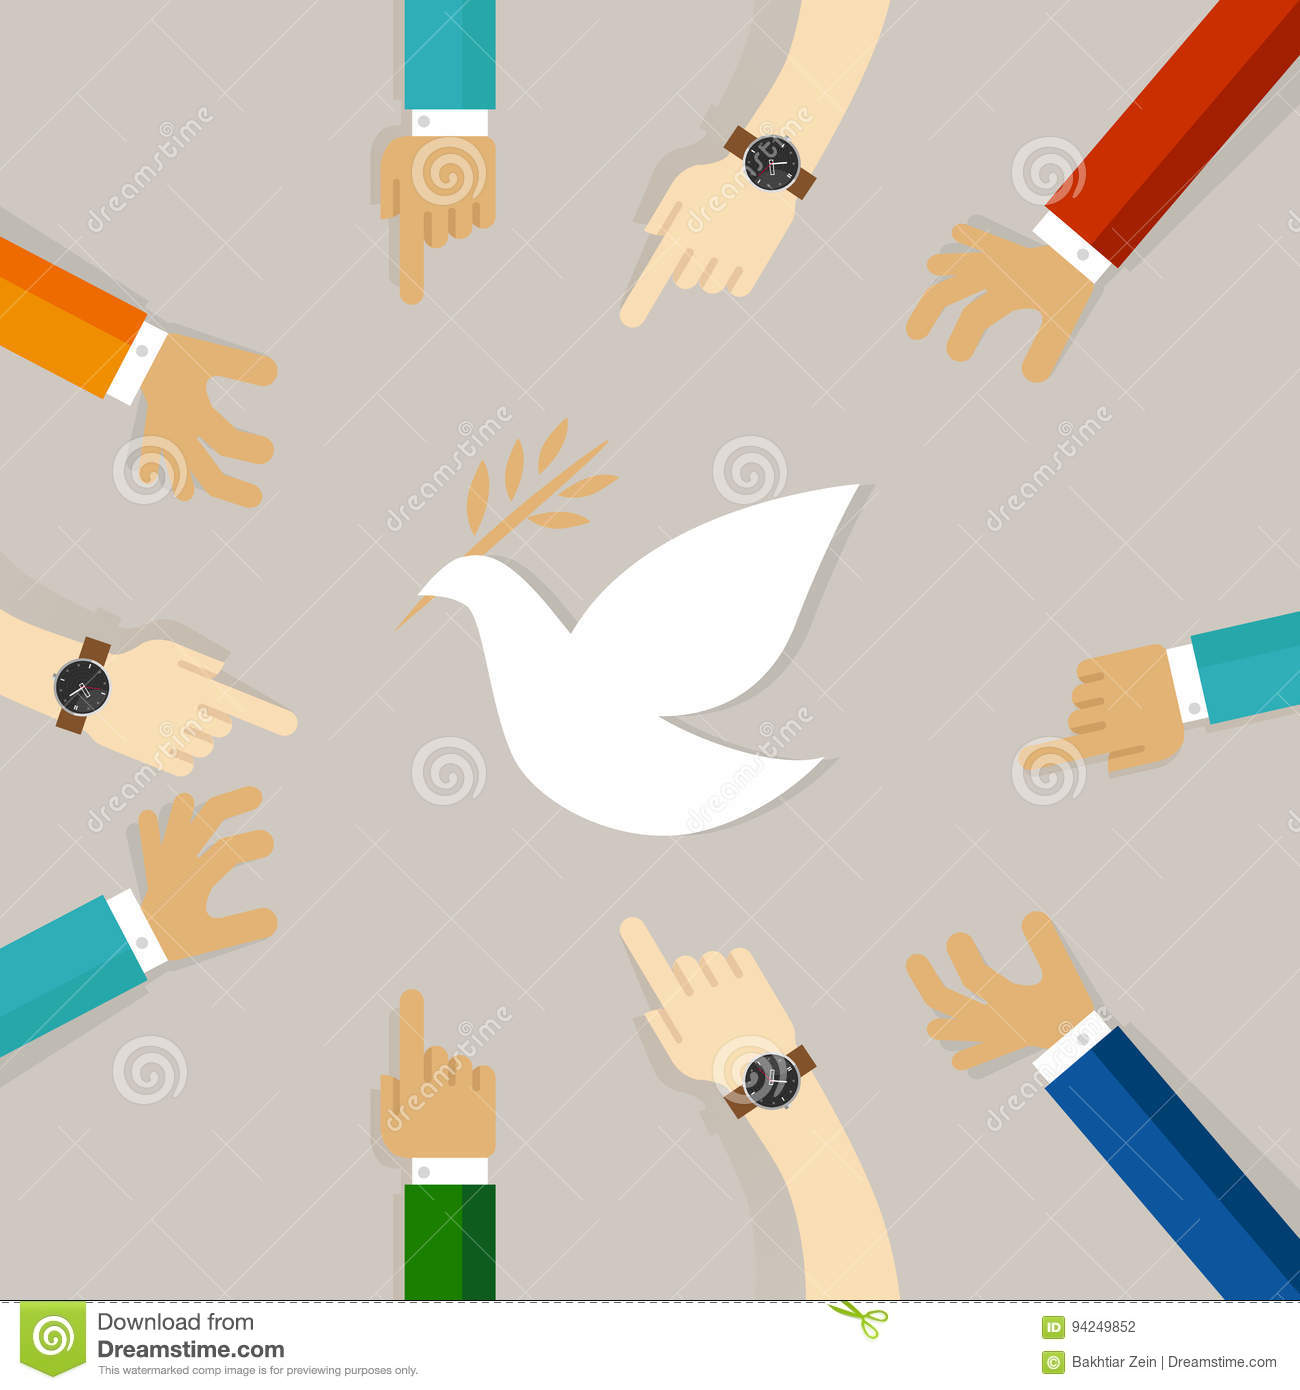 Peace conflict resolution symbol of international effort together peace conflict resolution symbol of international effort together to fly white pigeon stock photography biocorpaavc Image collections